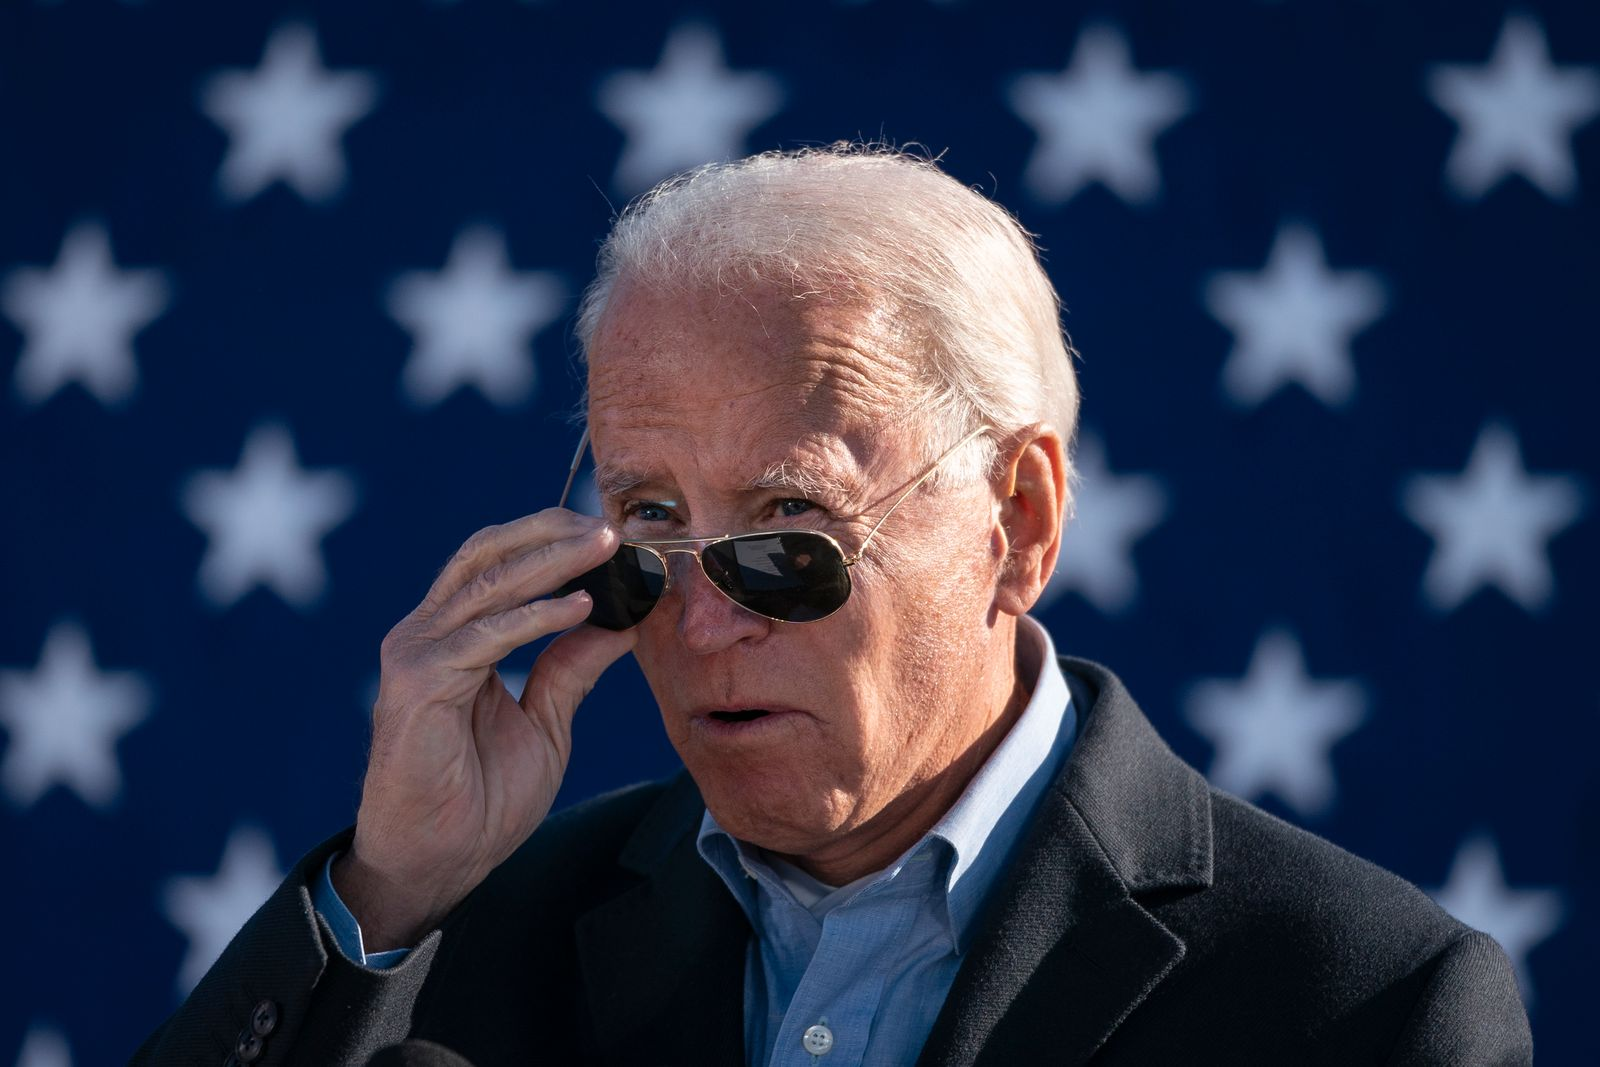 Joe Biden Campaigns In Western Pennsylvania One Day Before Election